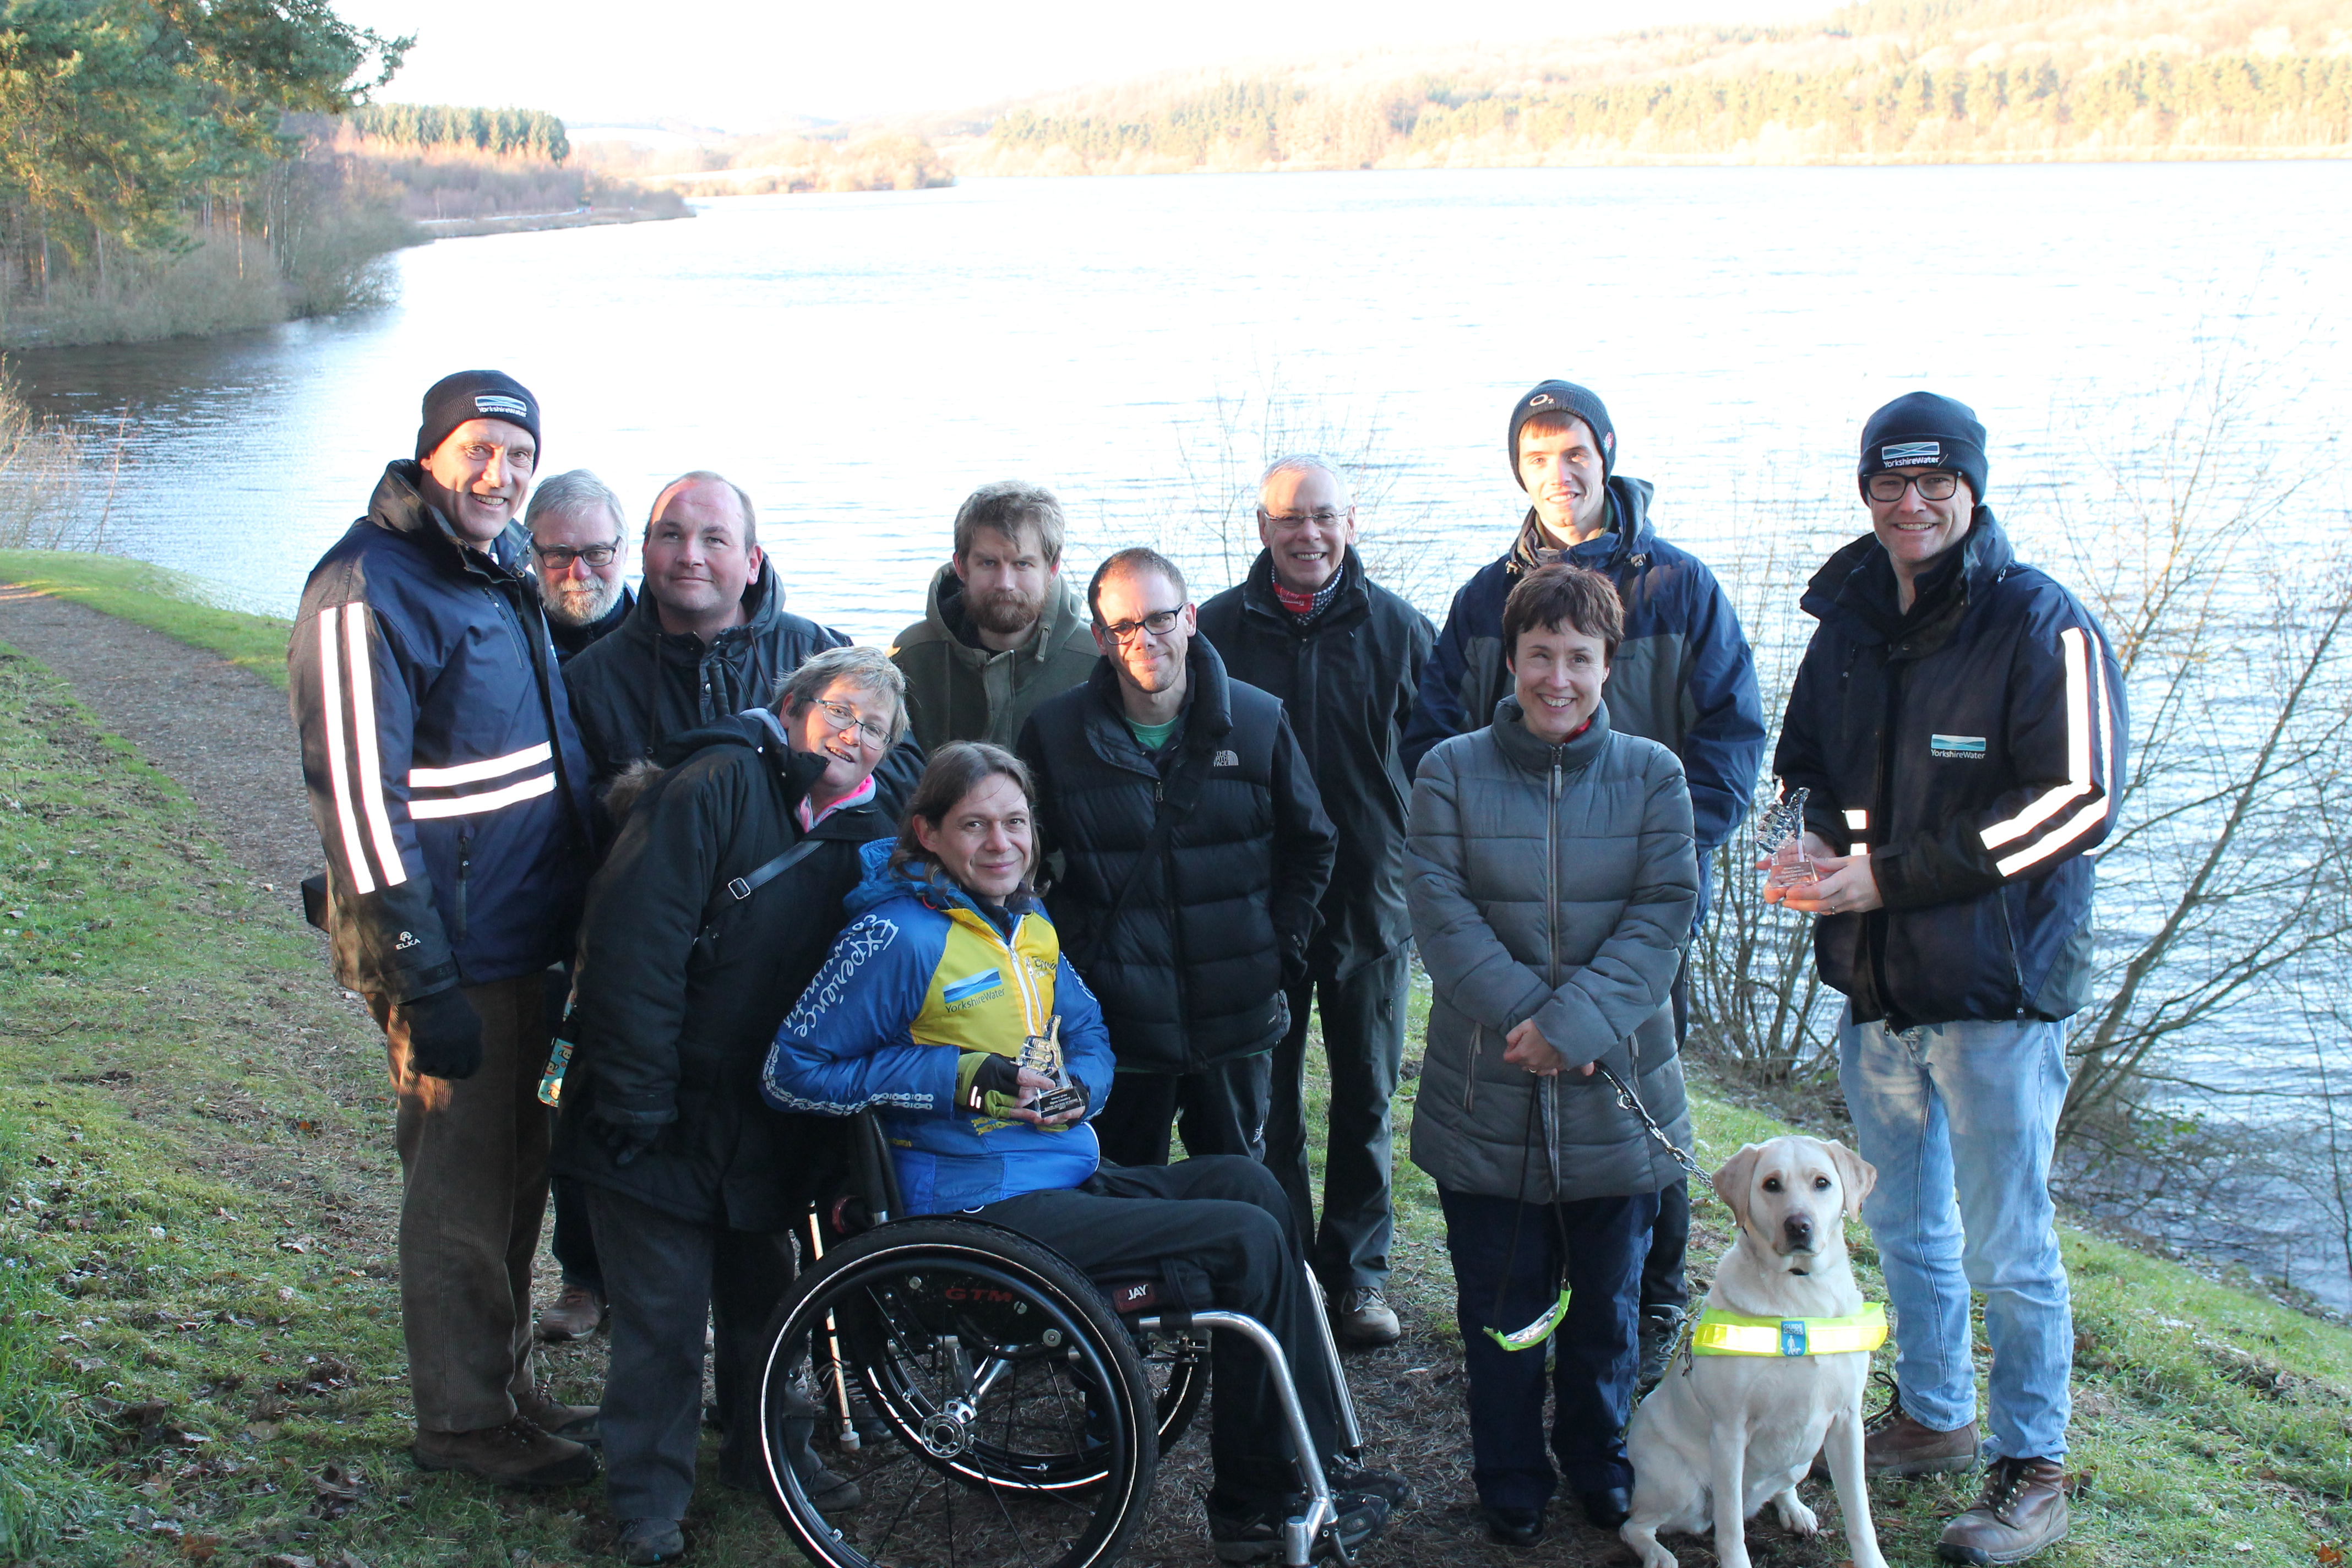 Yorkshire Water & Experience Community